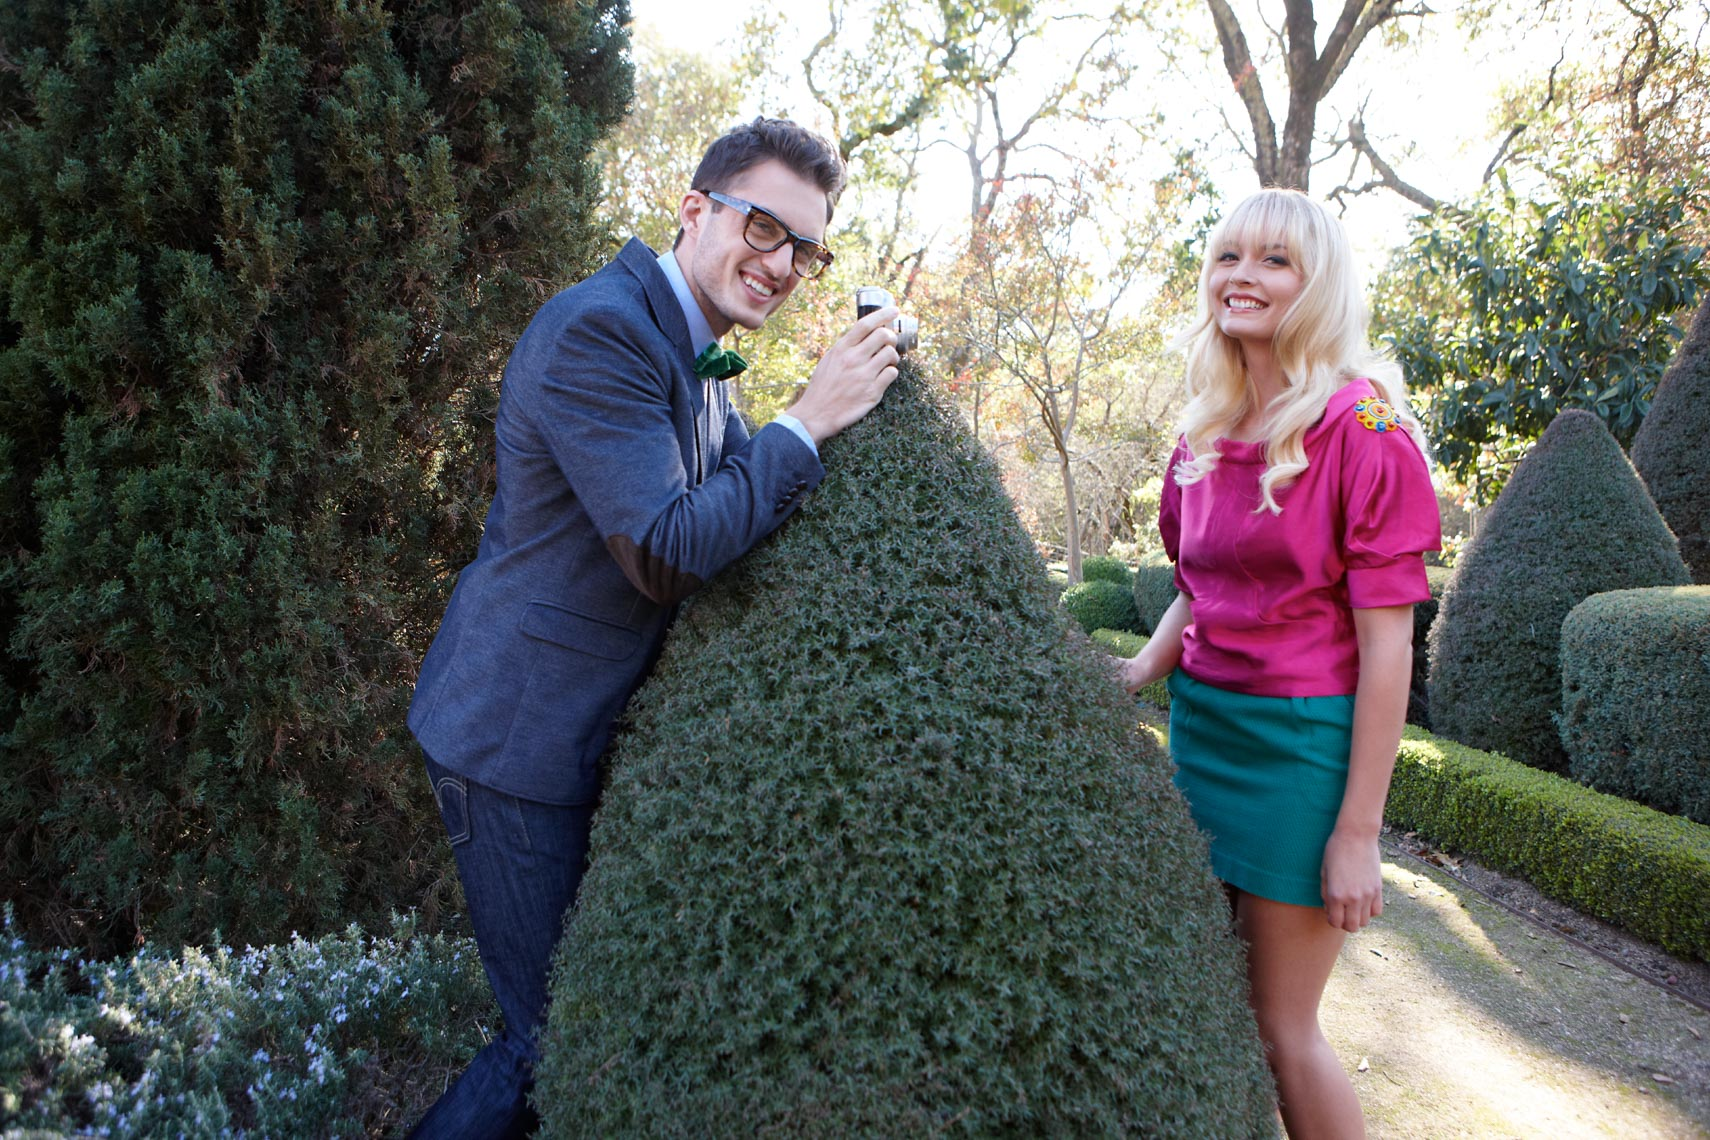 Formally dressed young couple snapping photos of each other in a topiary garden